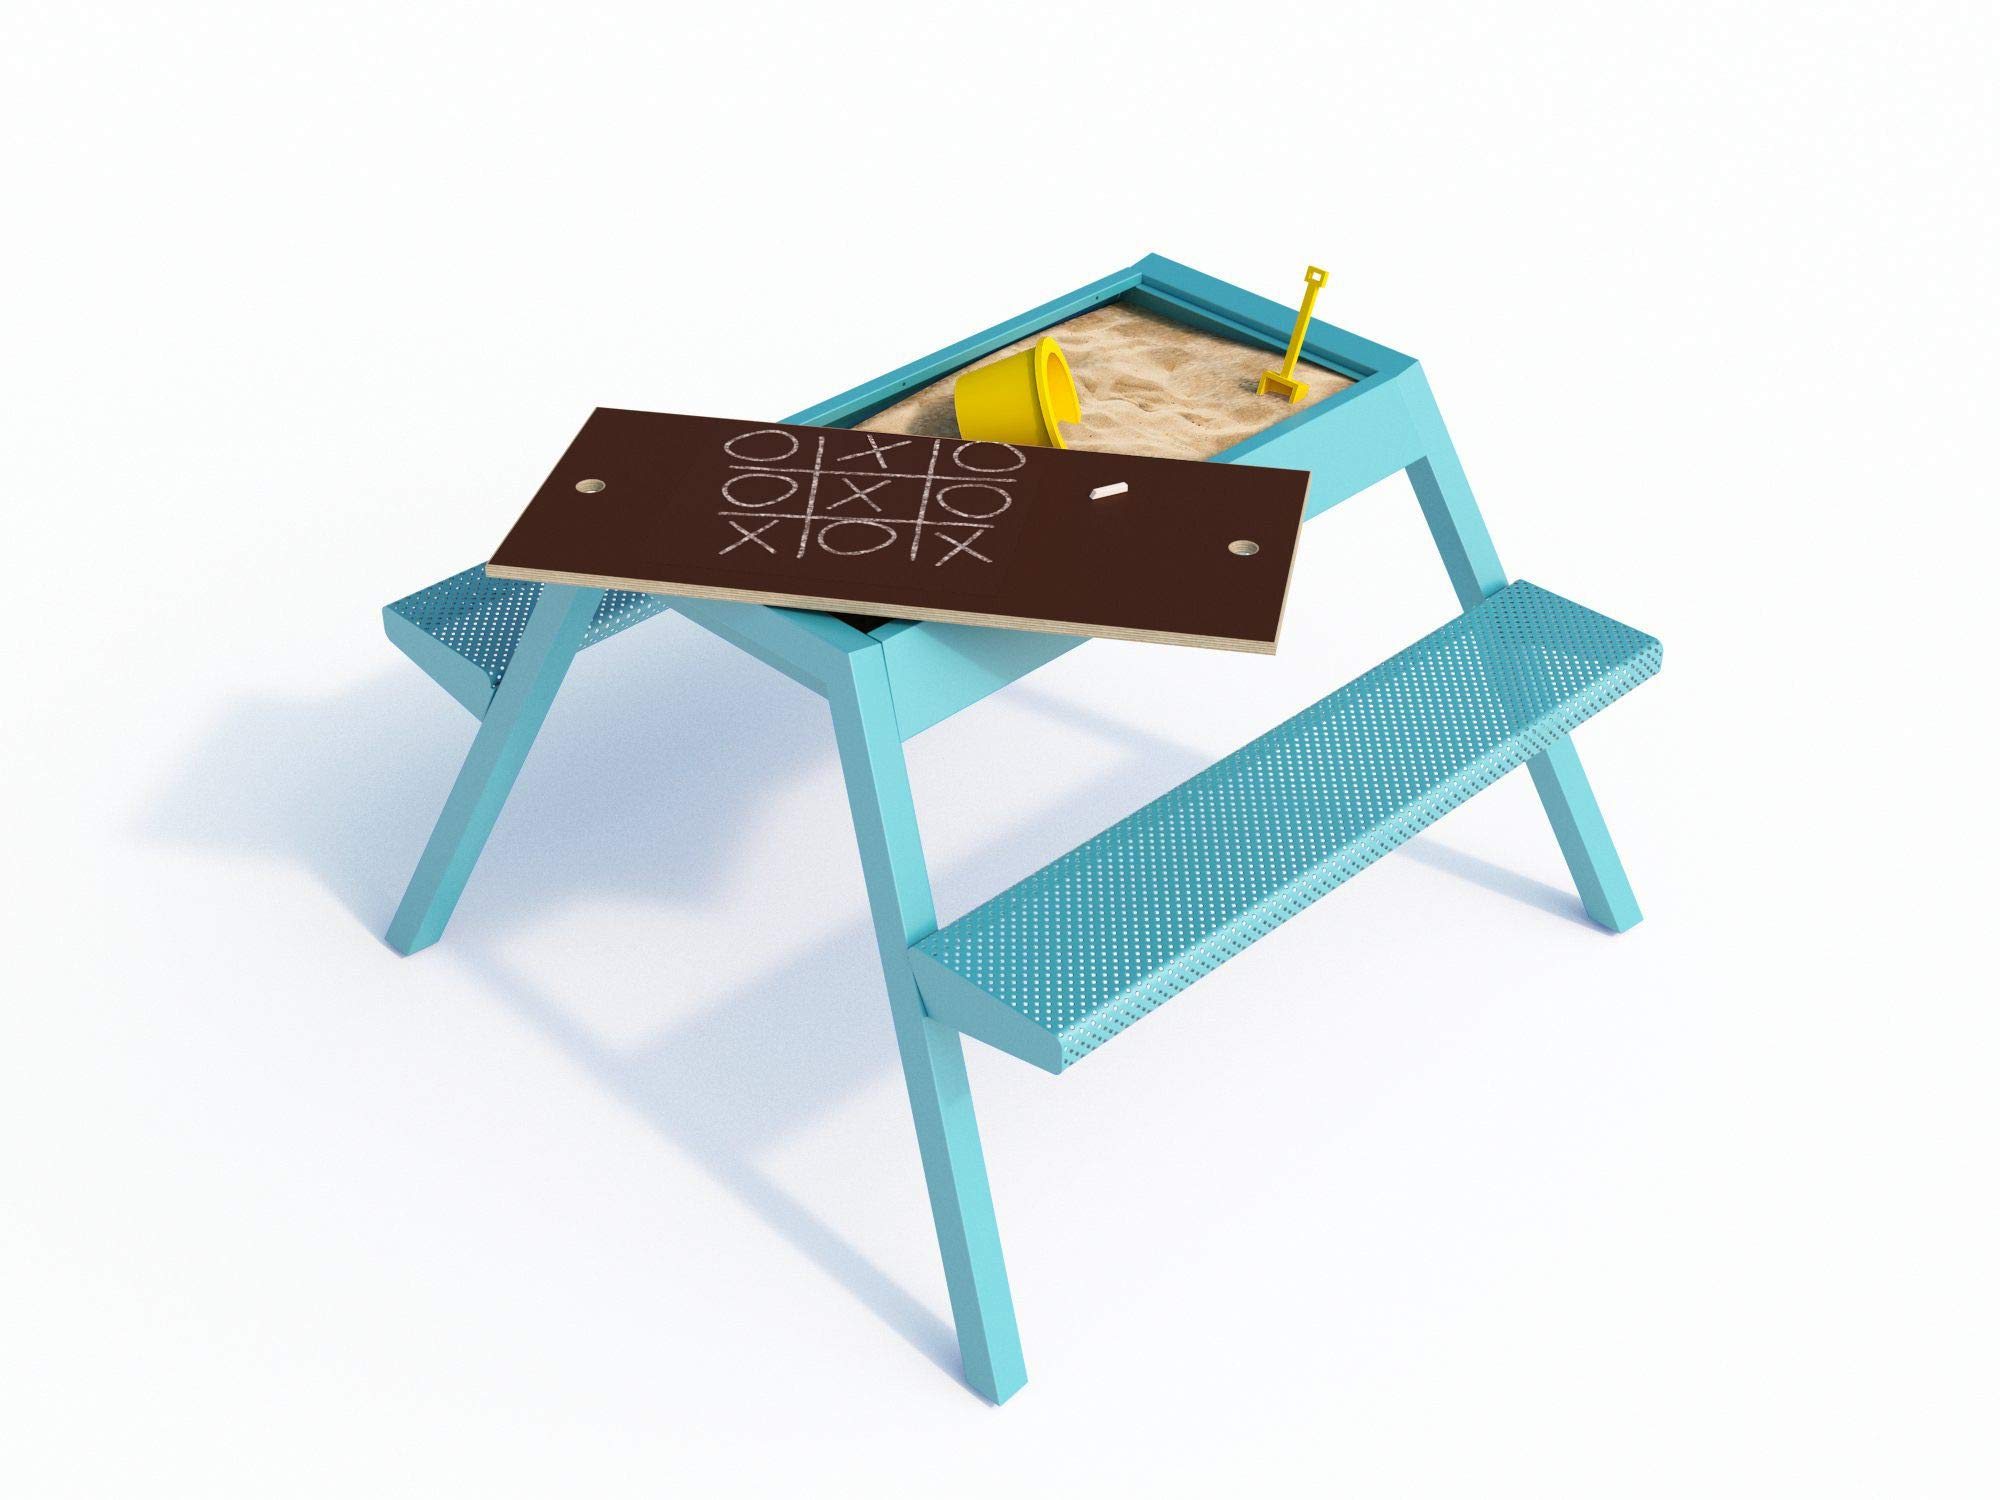 Smelis Kids Multi Purpose Picnic Table, Turquoise by Curonian (Image #1)